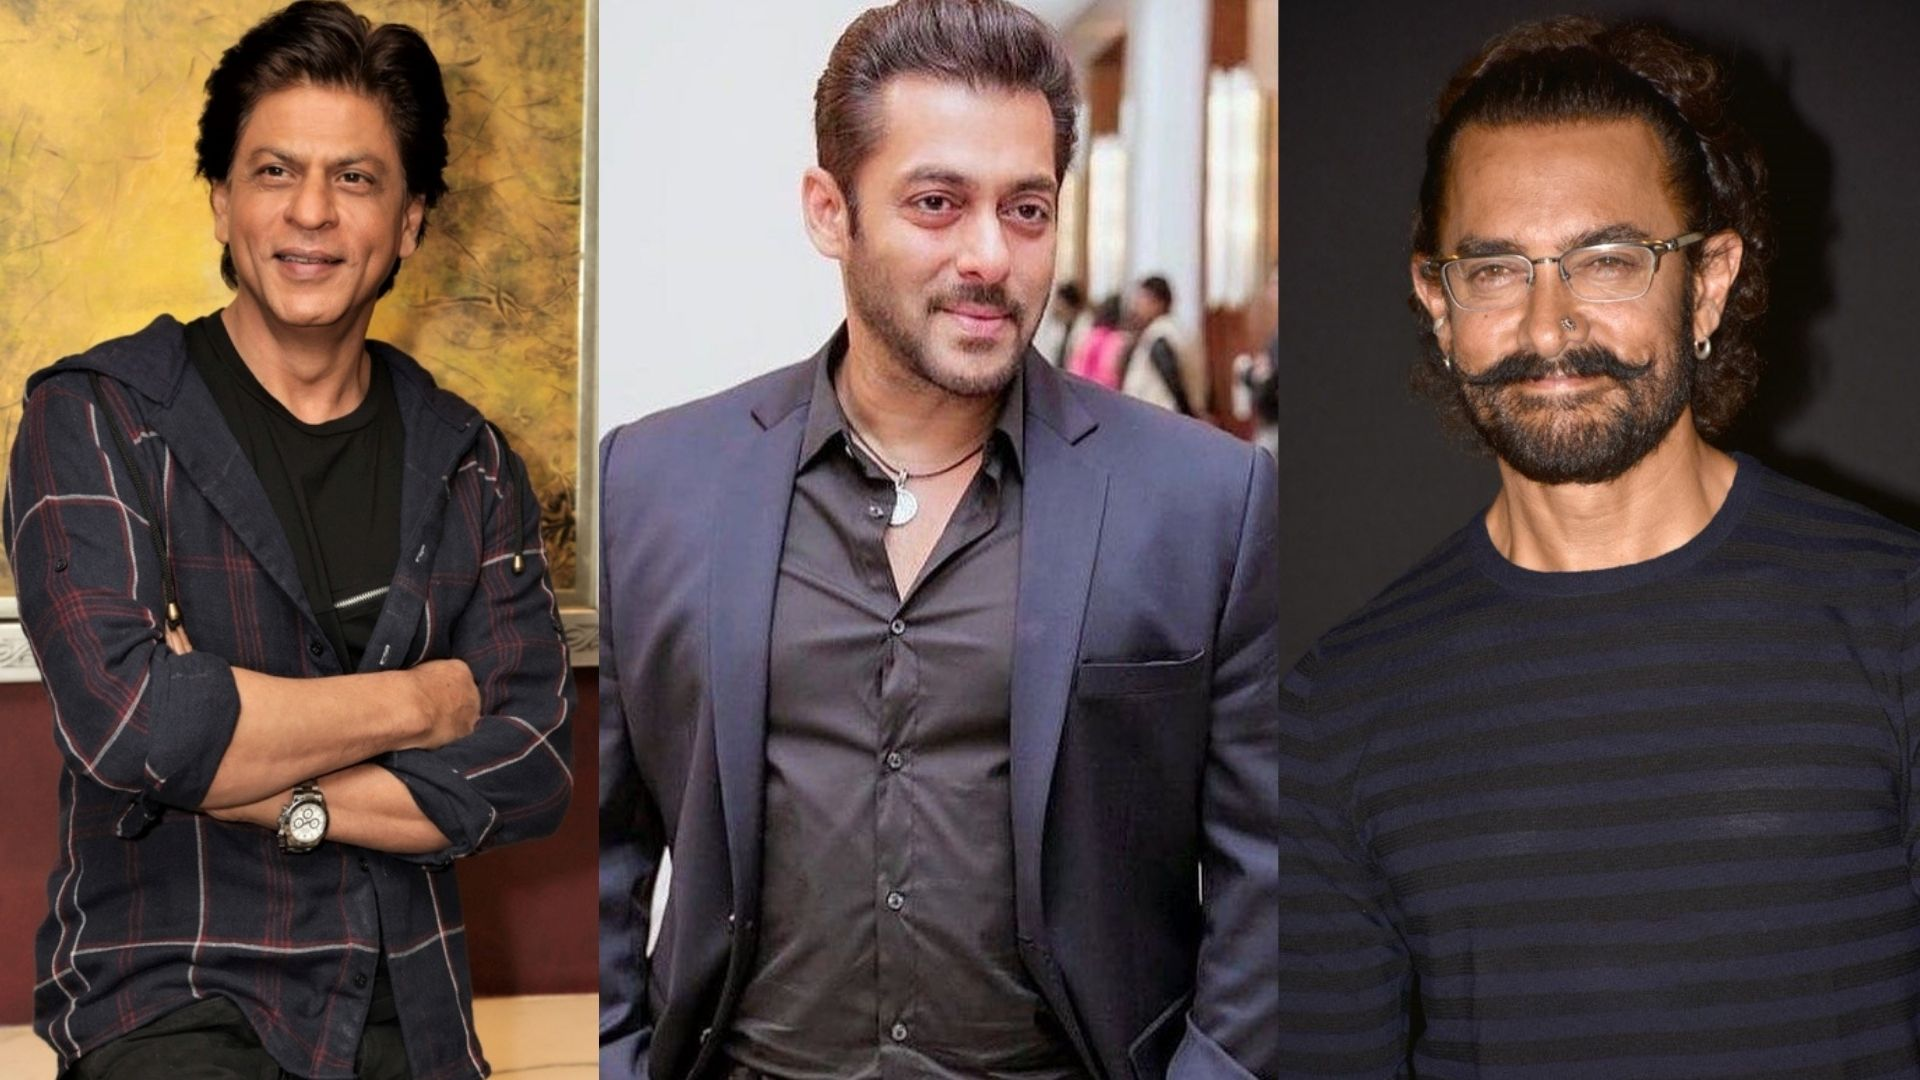 Shah Rukh Khan, Salman Khan, Aamir Khan- Popular Bollywood Celebrities Who Kissed And Made Up After A Bitter Fight